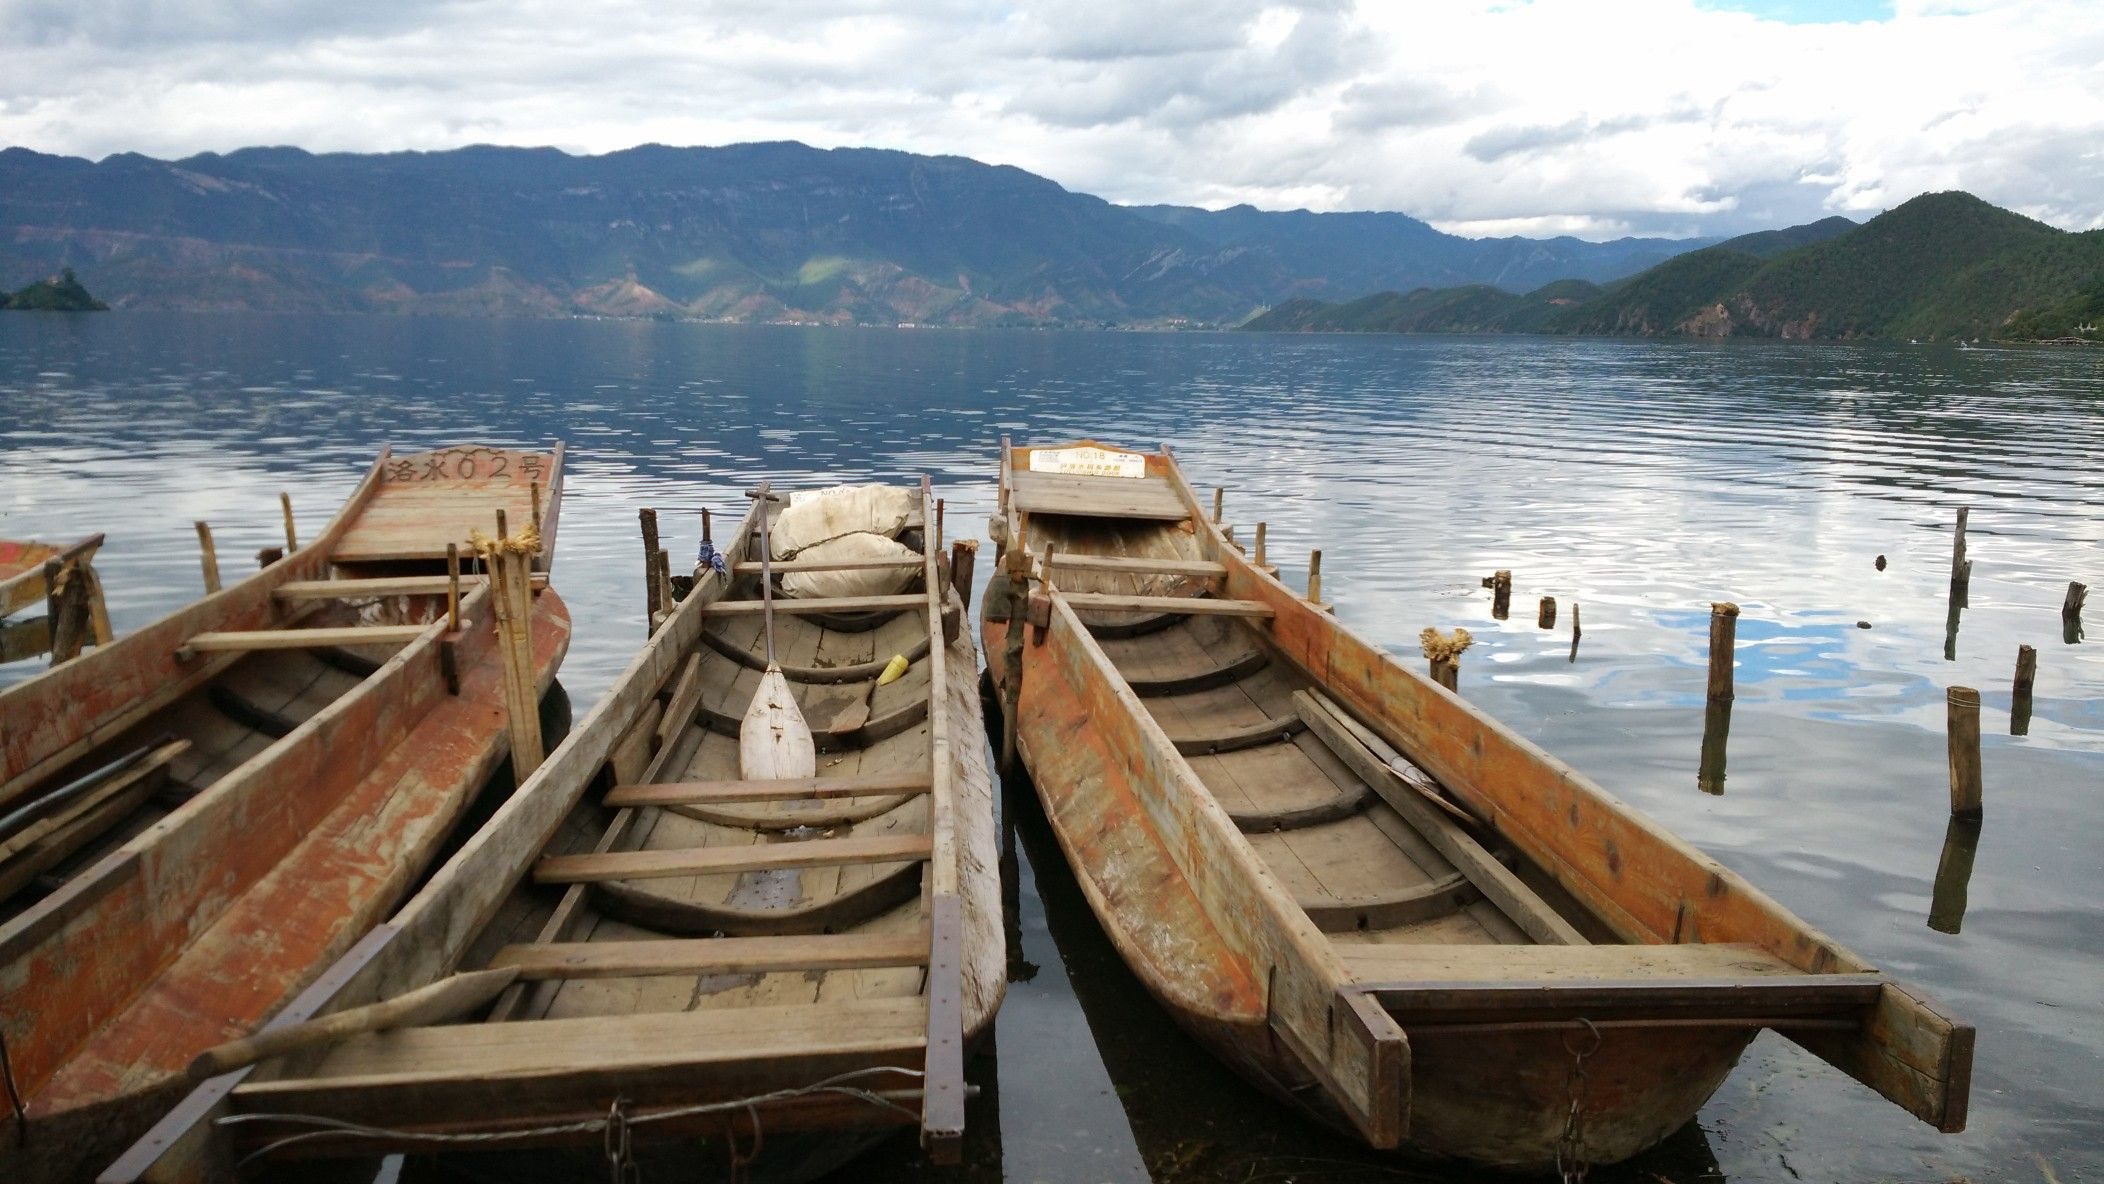 The Pig Trough Boat From Mosuo Nationality At Lugu Lake